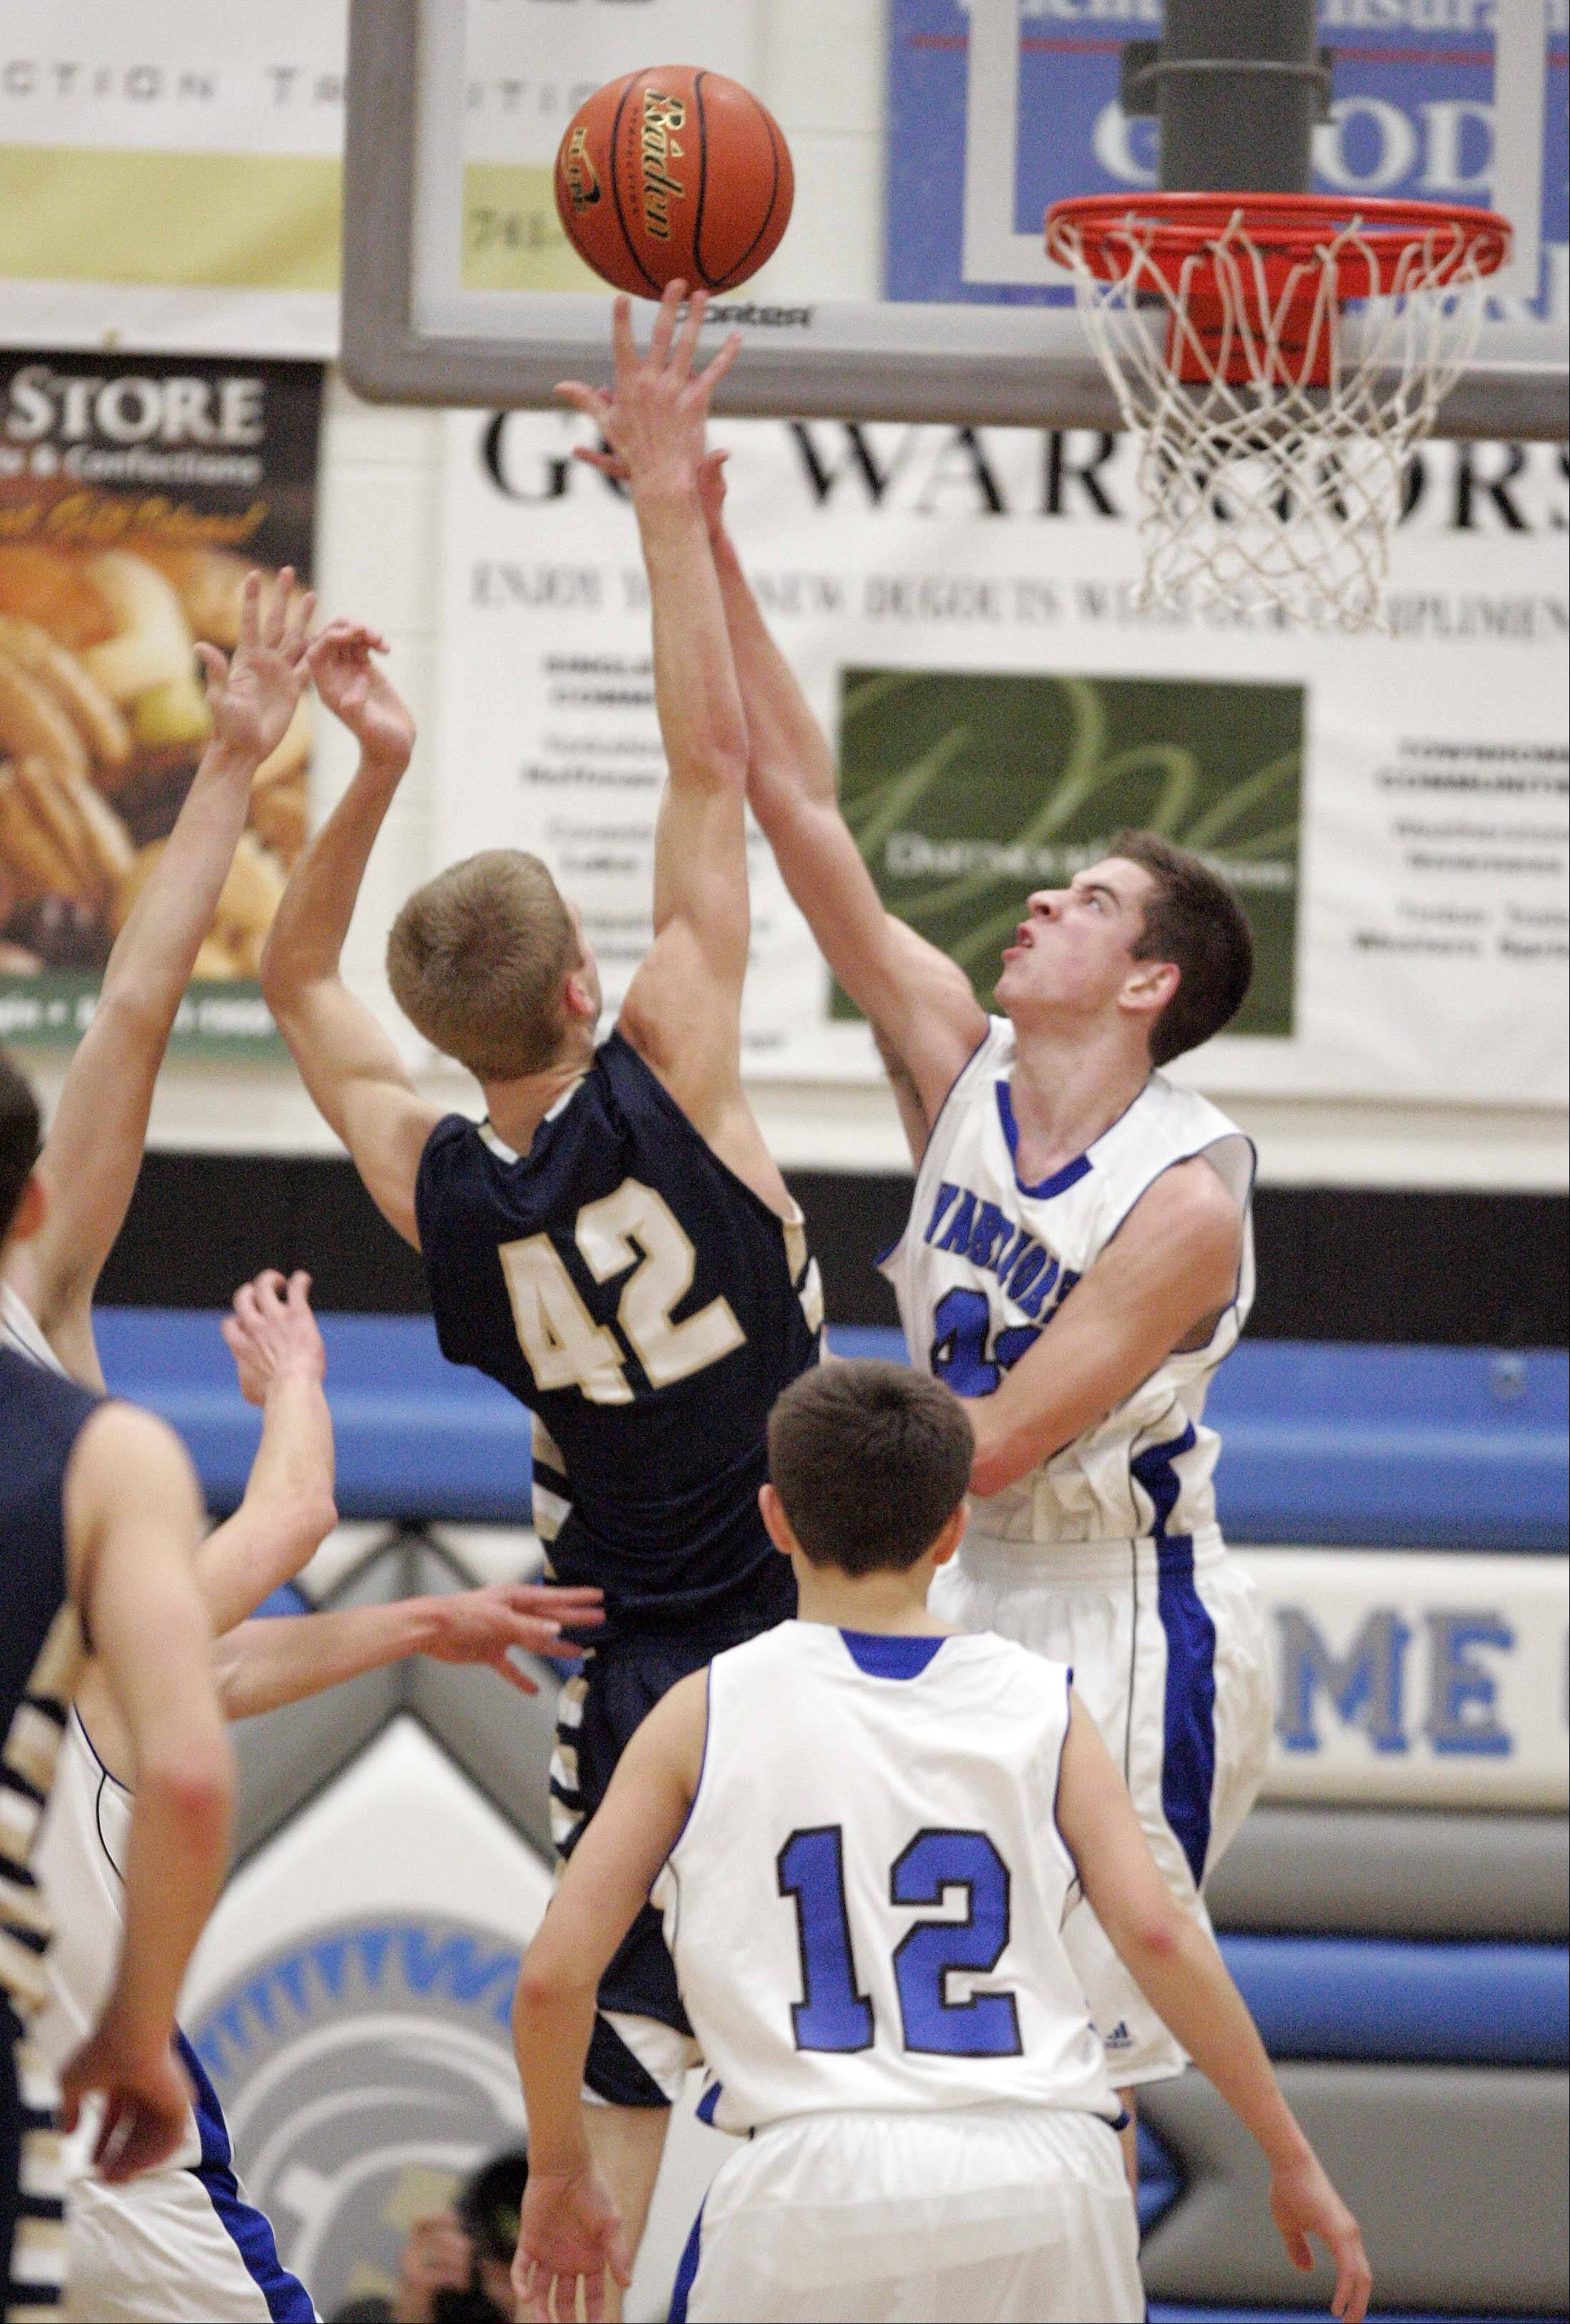 Westminster Christian guard Colin Brandon goes head-to-head with Harvest Christian center Dan Turpin .